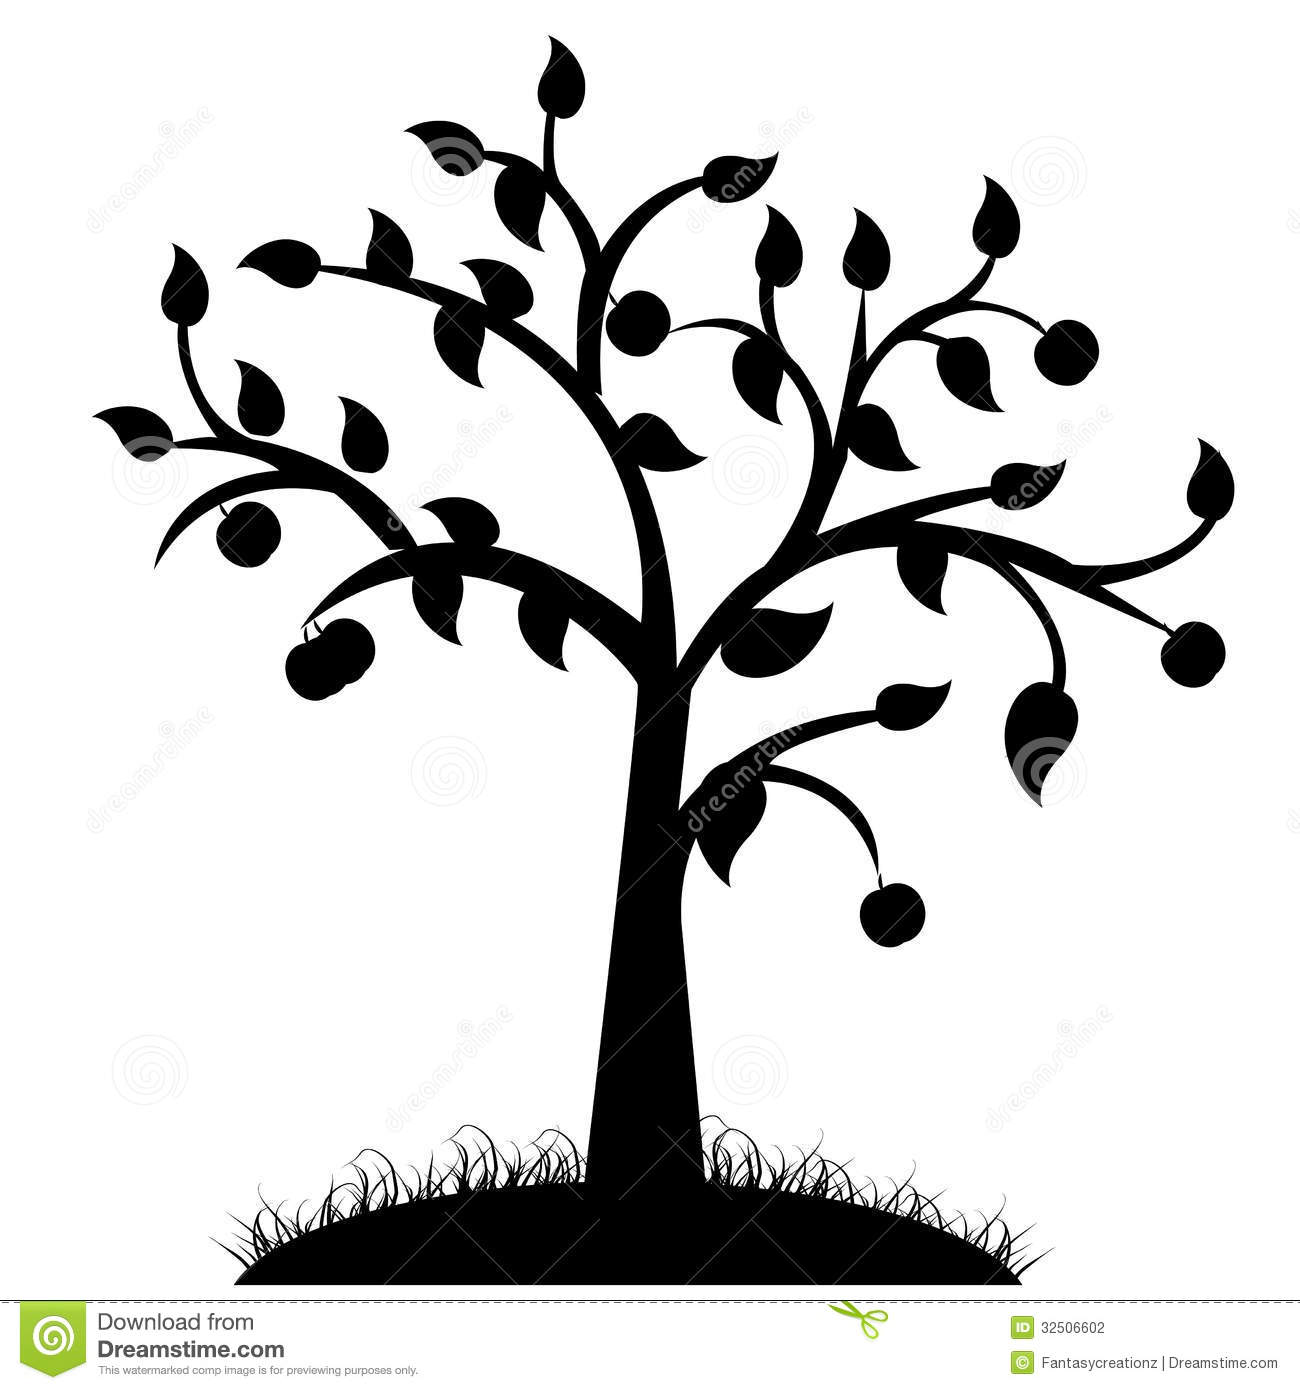 Simple Black And White Tree Drawings.